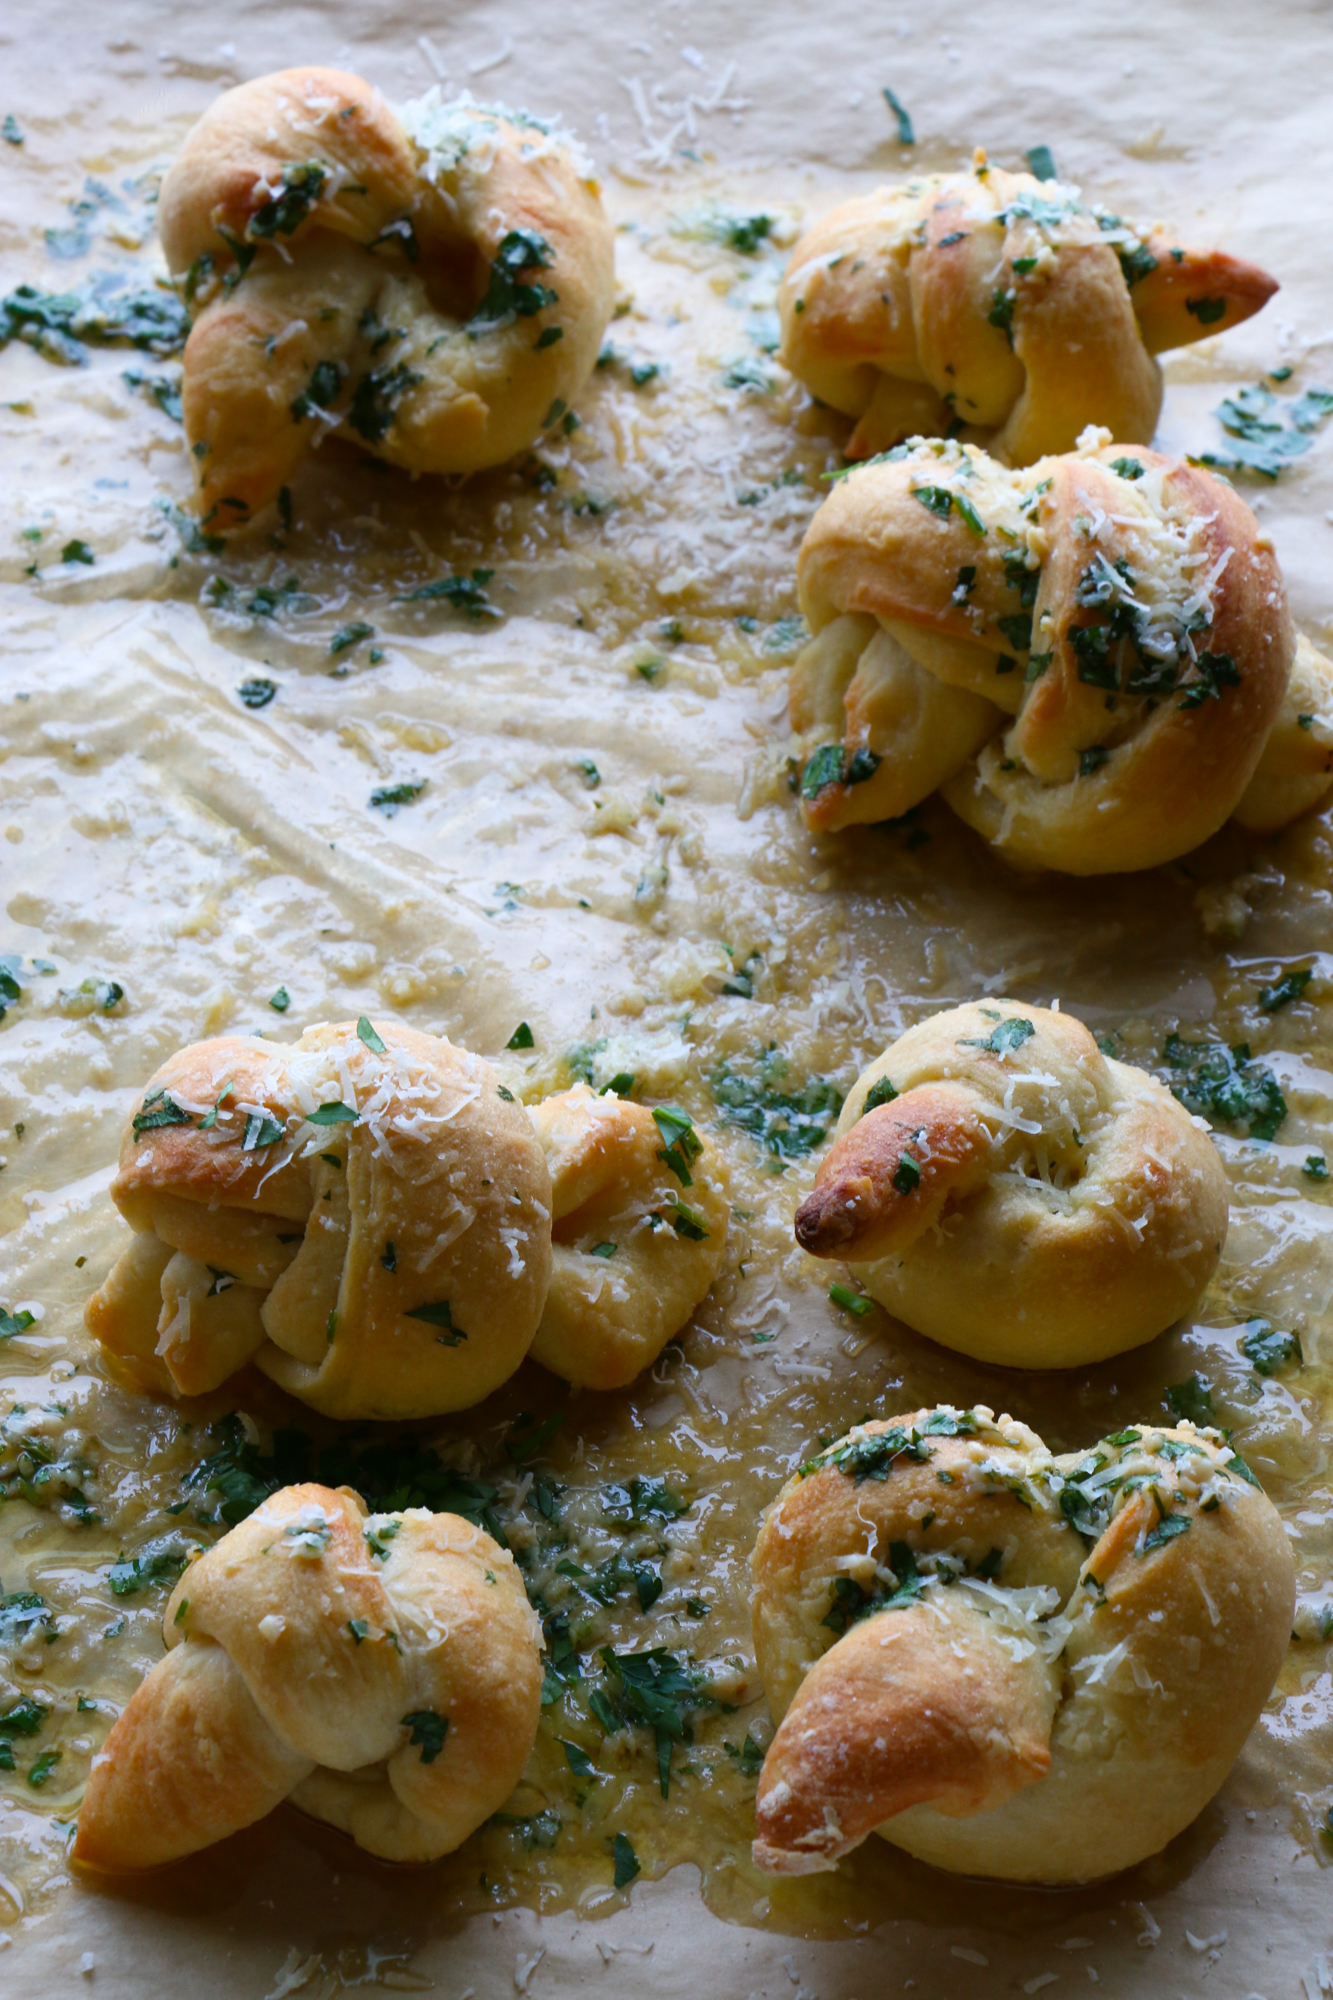 How To Make Parmesan Garlic Knots! So delicious and easy to make! Buttery, garlicky, cheesy goodness. You won't be able to resist these!